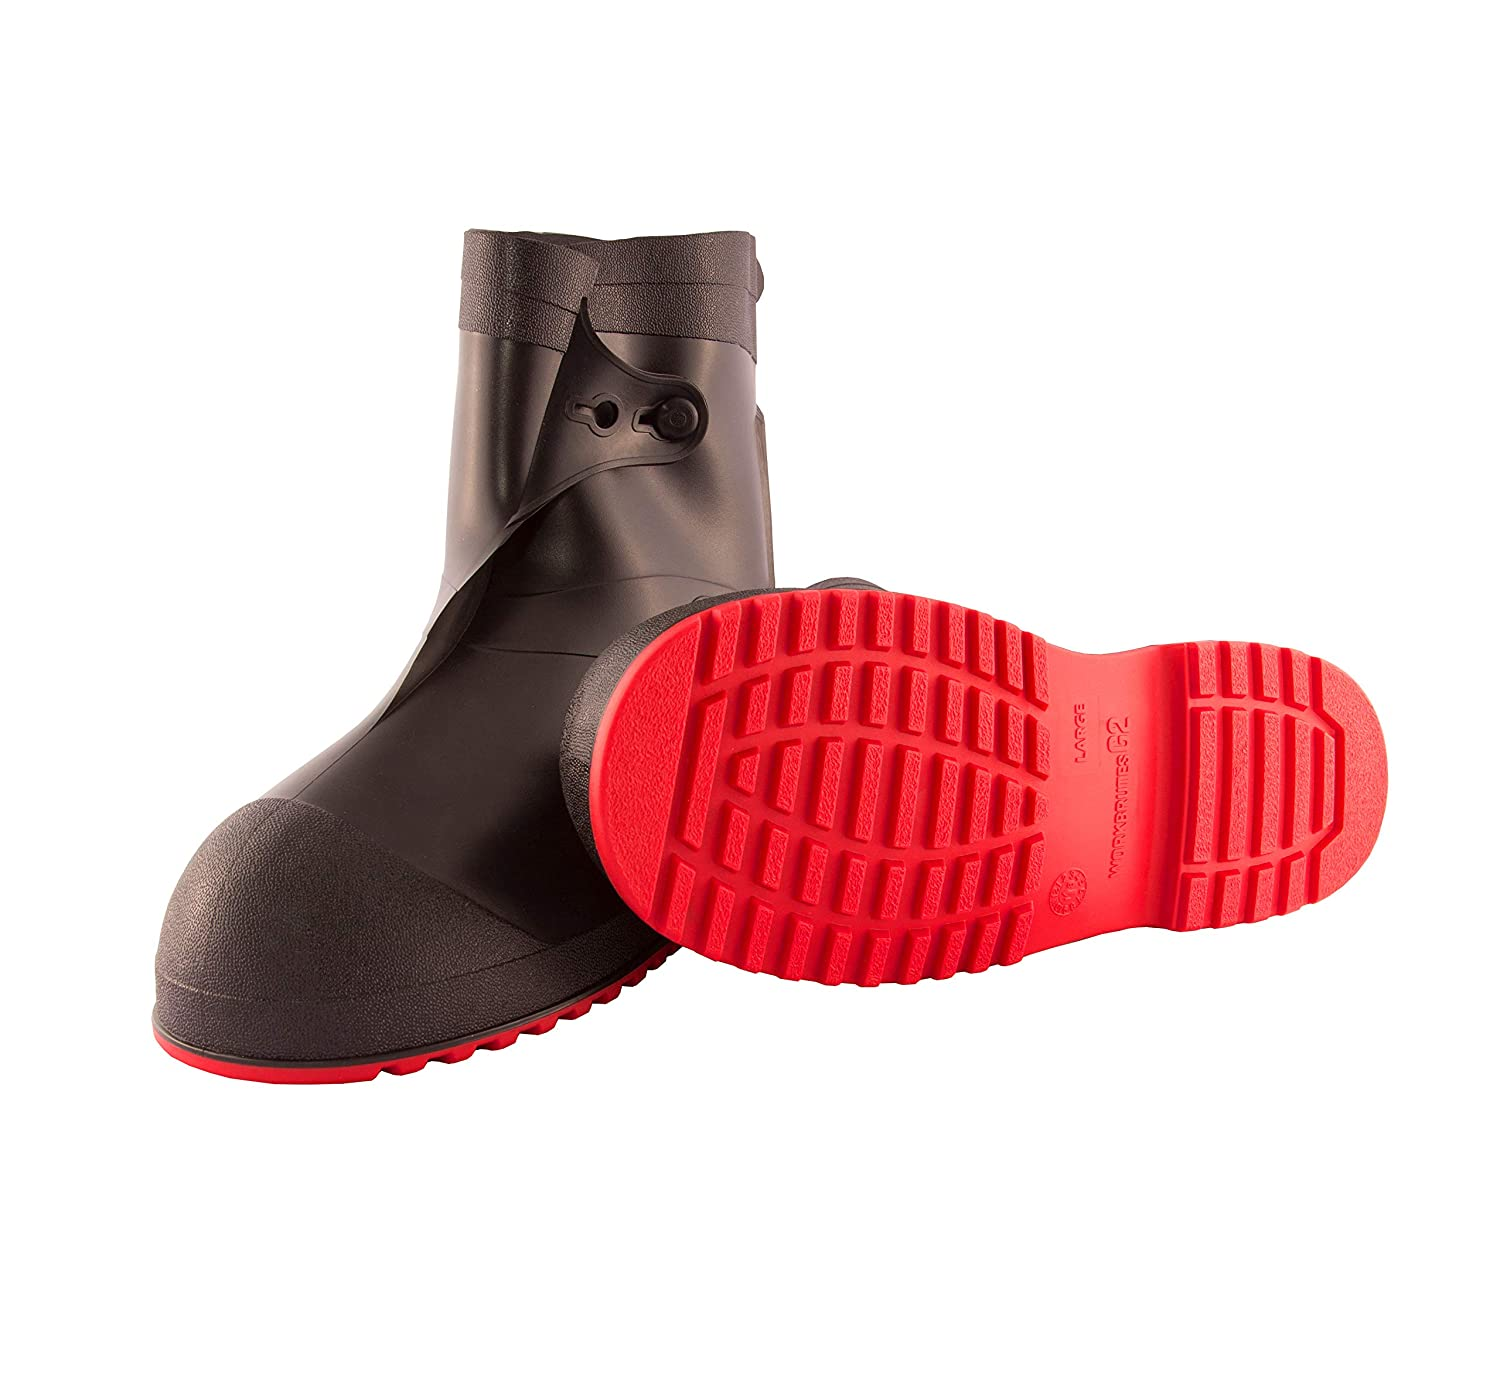 Tingley Workbrutes G2 PVC Overshoe Red Sole - Black Upper Cleated Outsole 10 Ht